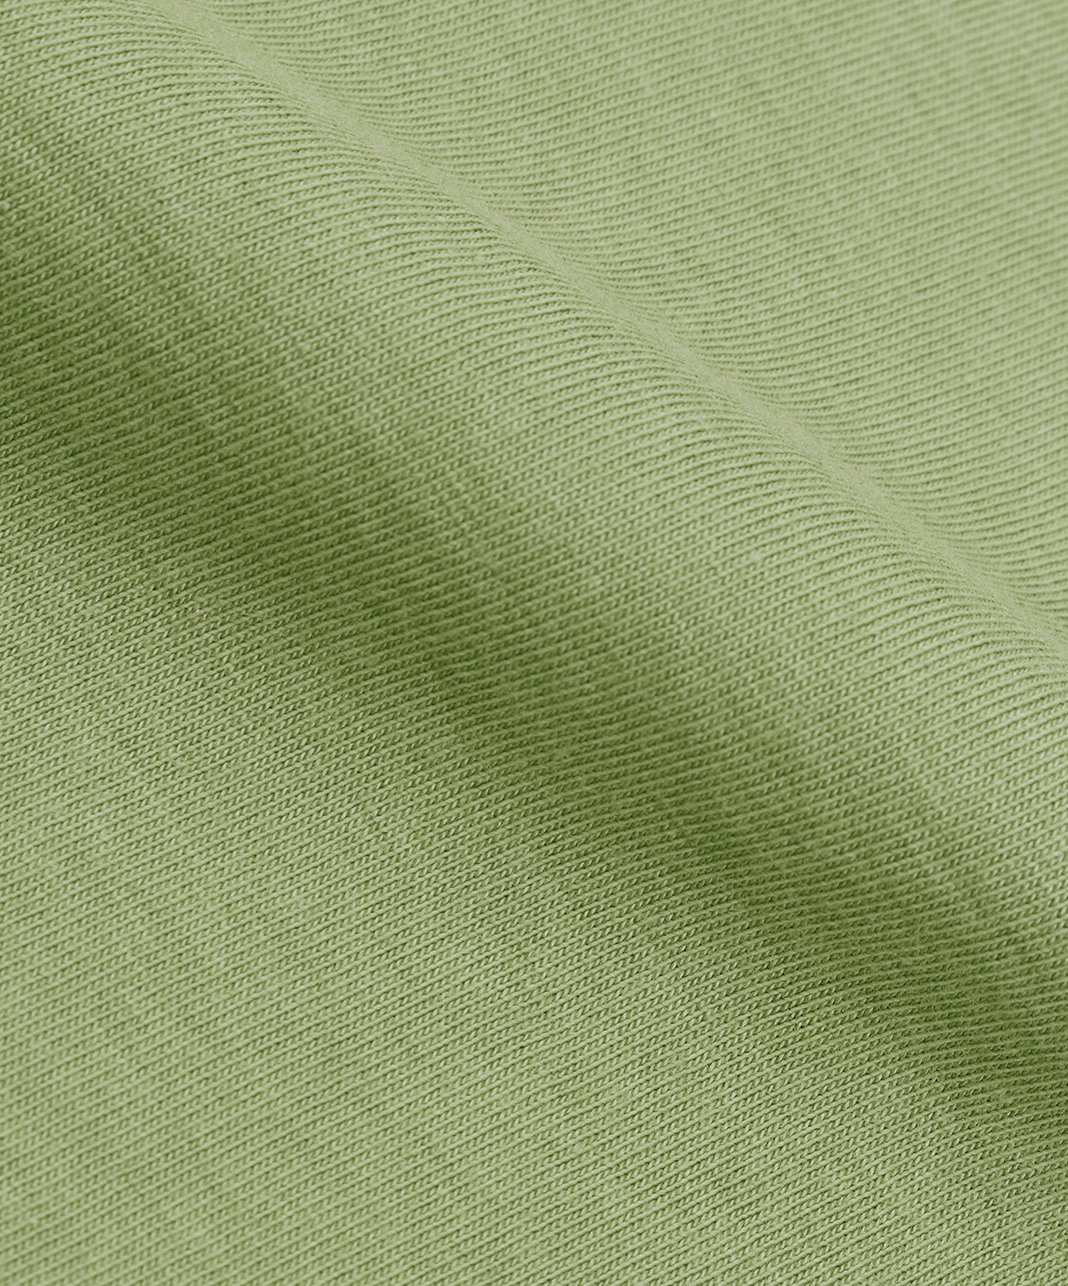 Foto do produto Camiseta Essencial Tingimento Natural Verde